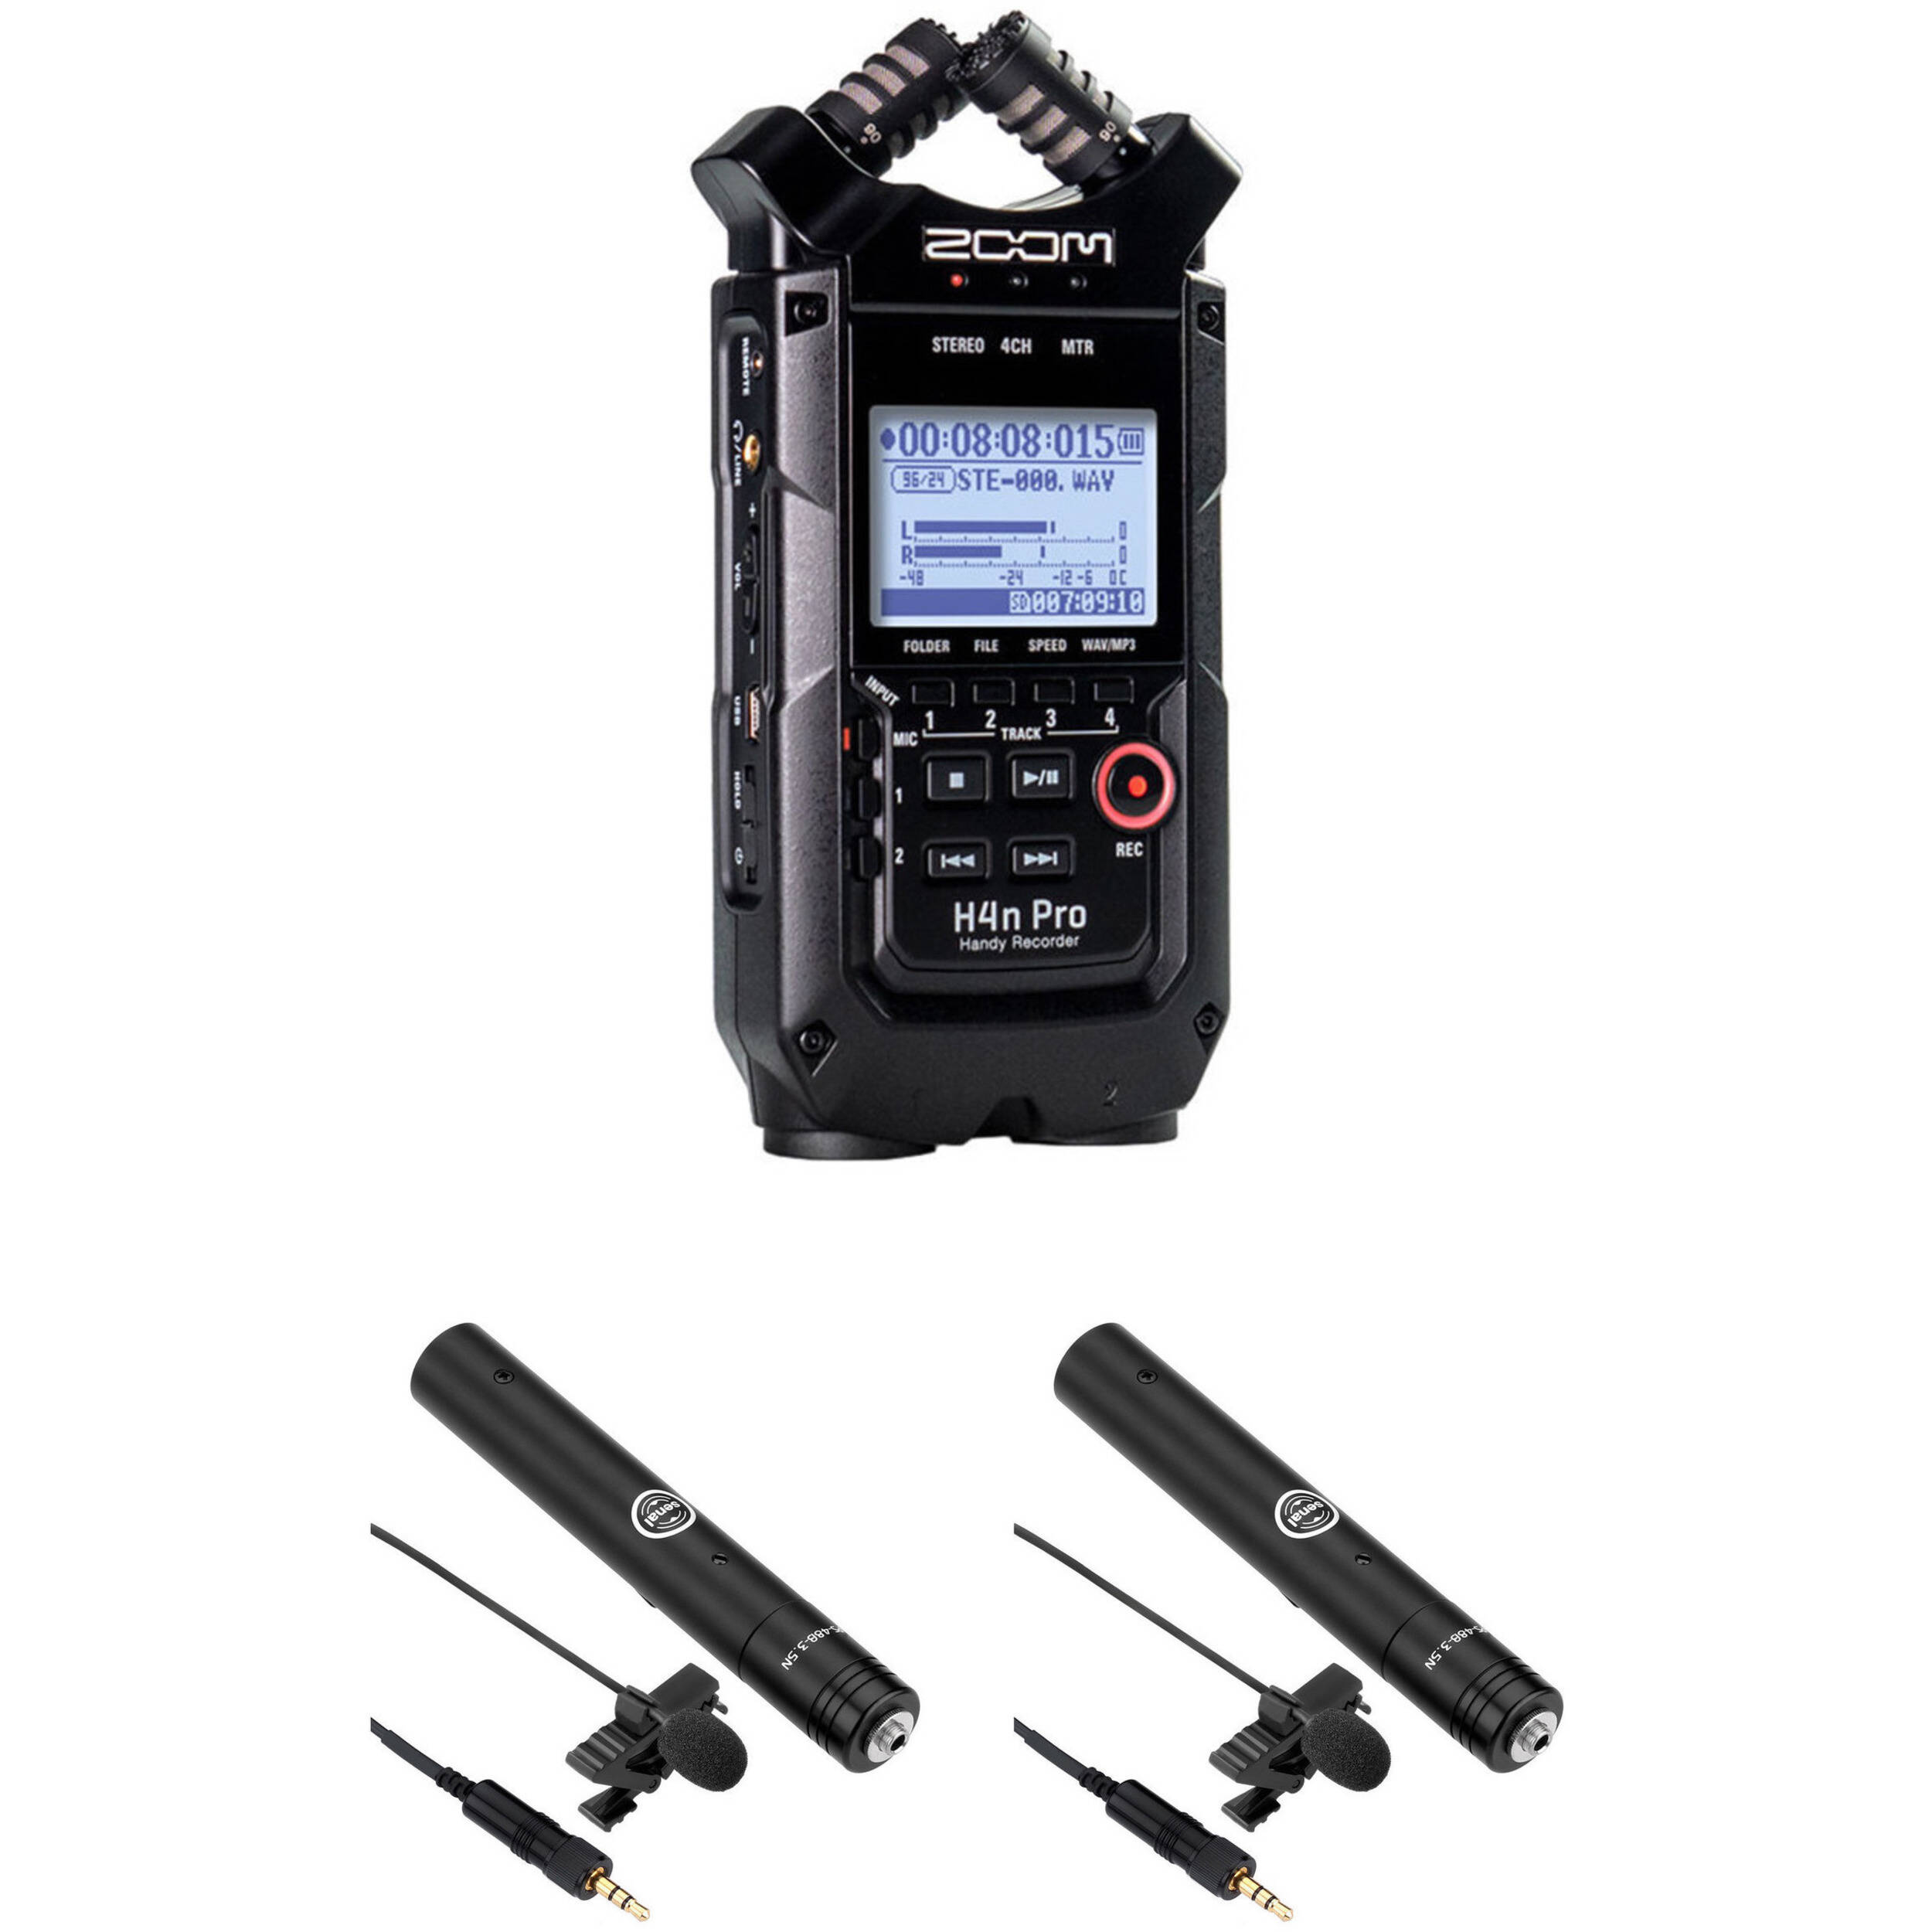 Zoom H4n Pro 2 Person Interview Kit With Lav Mics Black B H